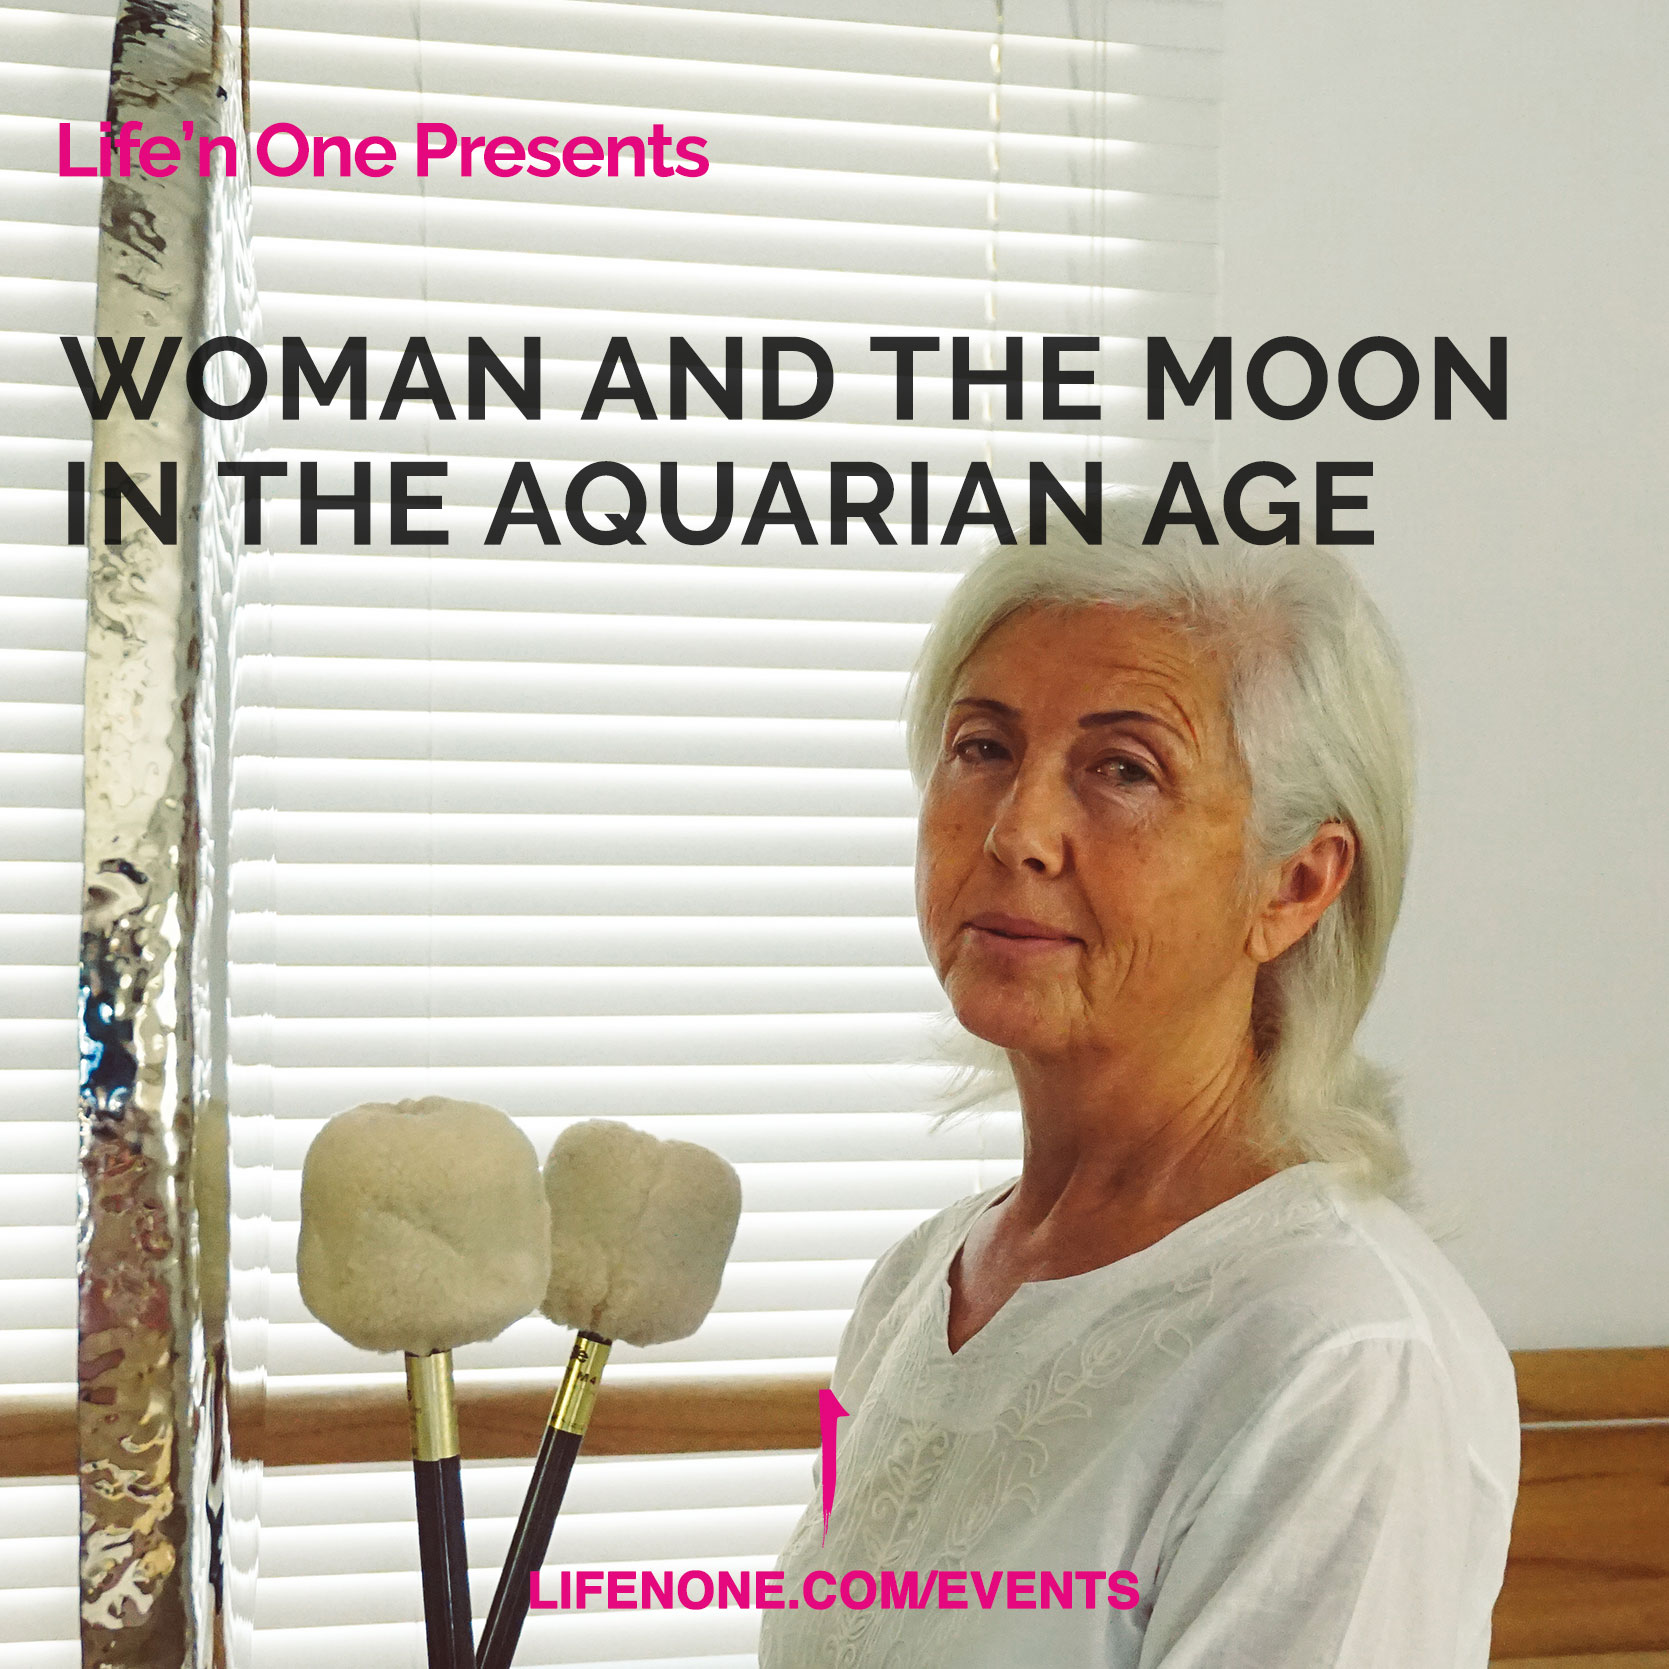 191109-woman-and-the-moon-in-the-aquarian-age.jpg